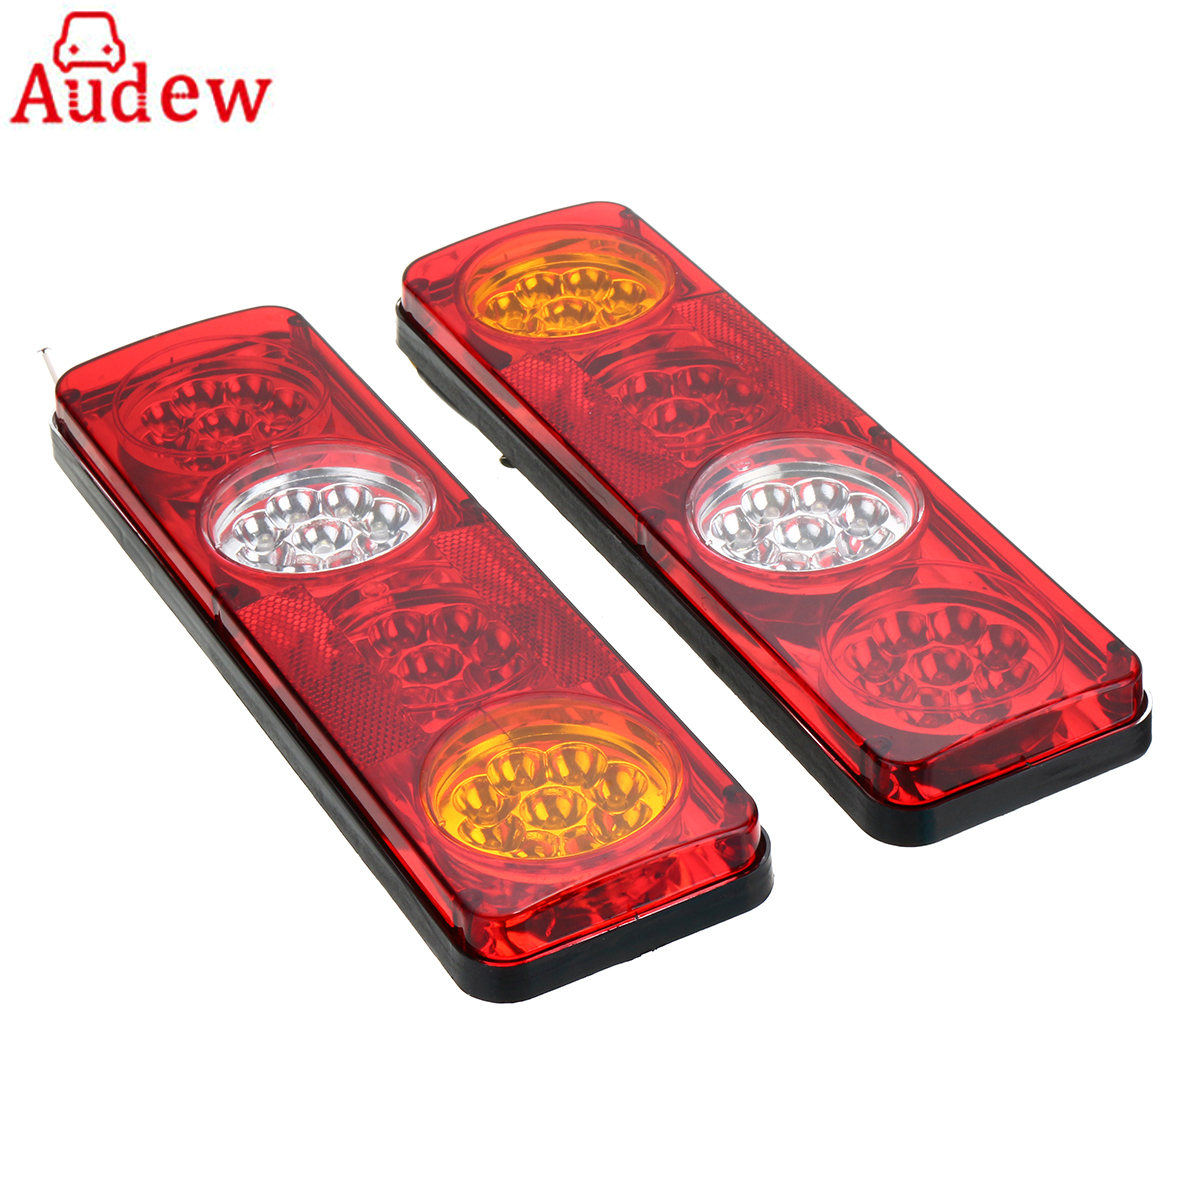 2pcs LED Car Lamp Auto Rear Tail Lights Lamp Brake Stop Light Waterproof for Trailer Caravan Truck Lorry 36LED 24V red white 1 pair 24v 36 led trailer car truck led tail light lamp auto rear light tail light